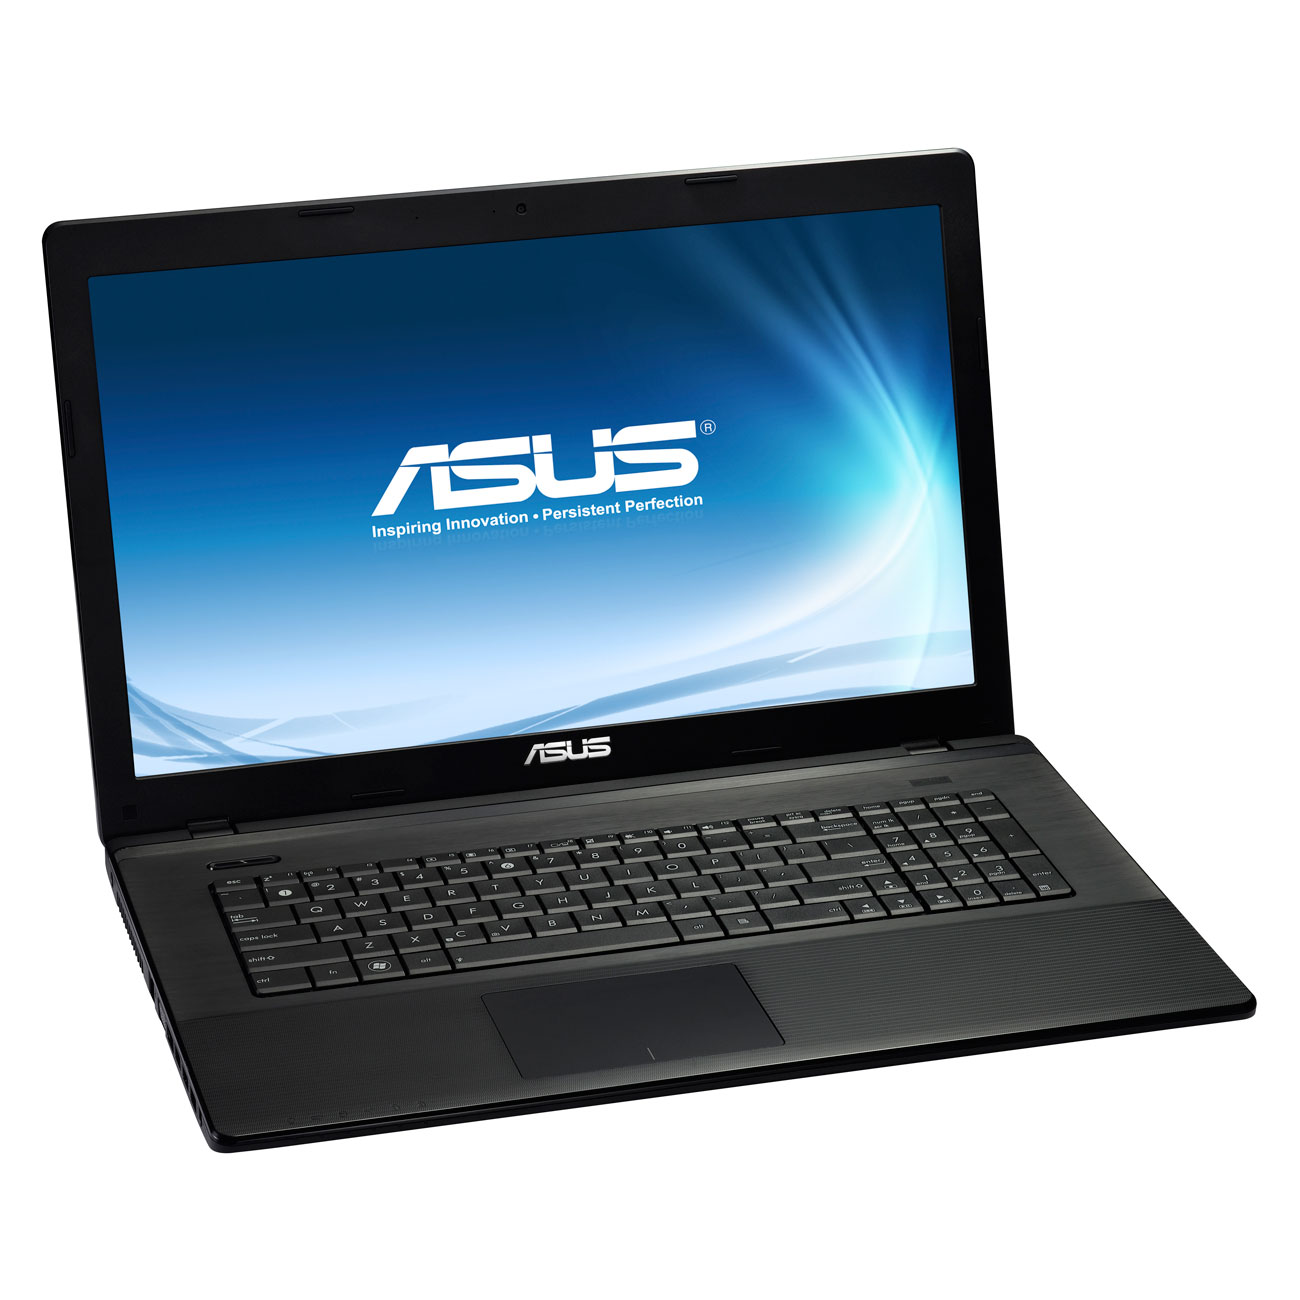 "PC portable ASUS X75A-TY043V Intel Pentium B970 4 Go 320 Go 17.3"" LED Graveur DVD Wi-Fi N Webcam Windows 7 Premium 64 bits (garantie constructeur 2 ans)"